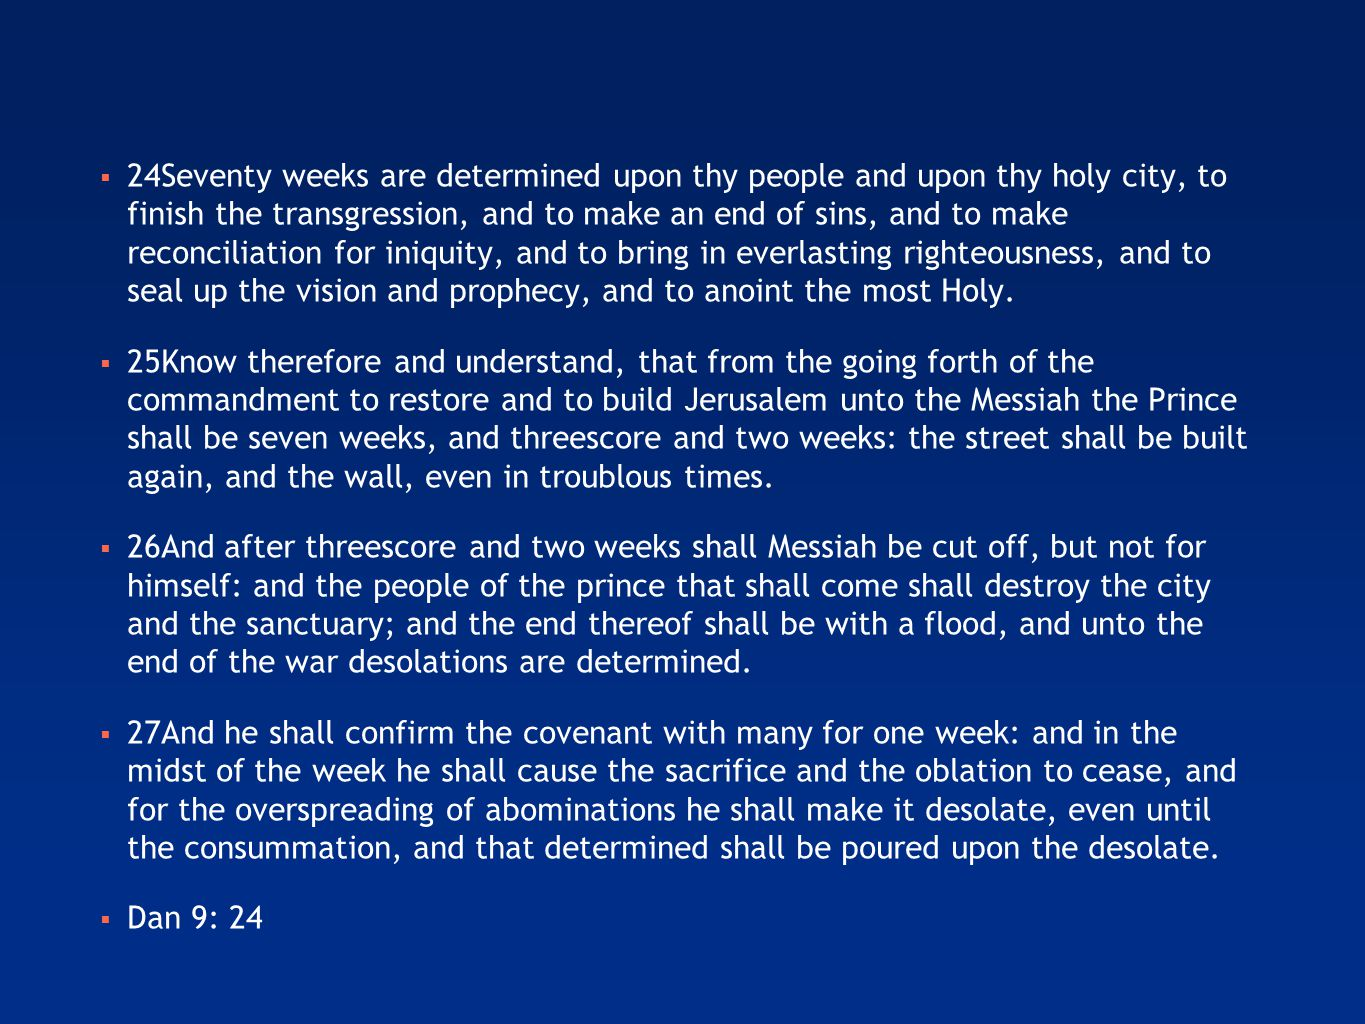  24Seventy weeks are determined upon thy people and upon thy holy city, to finish the transgression, and to make an end of sins, and to make reconciliation for iniquity, and to bring in everlasting righteousness, and to seal up the vision and prophecy, and to anoint the most Holy.